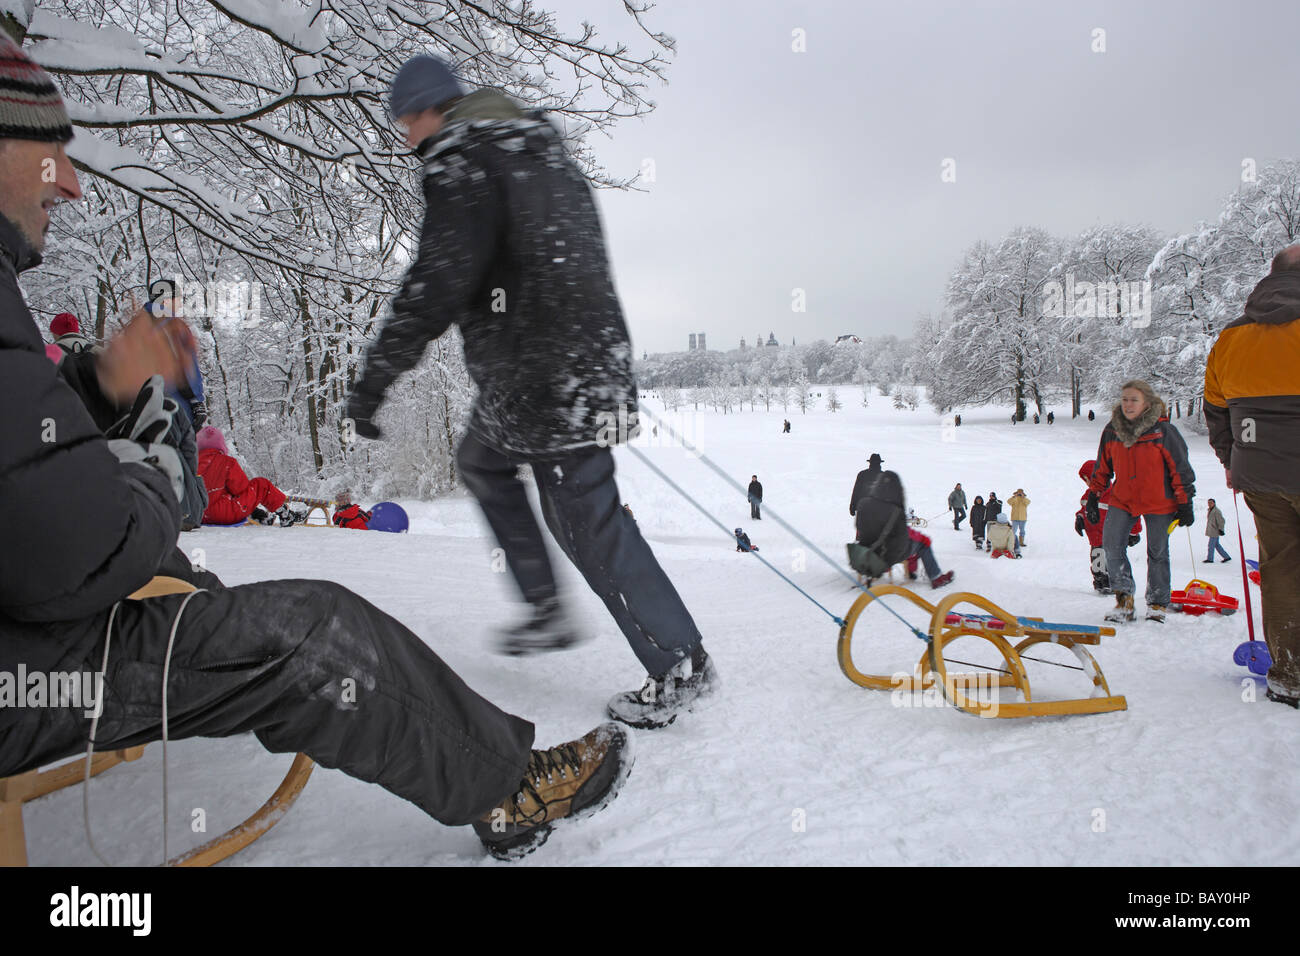 People sledging at English Garden on a winter's day, Munich, Bavaria, Germany - Stock Image